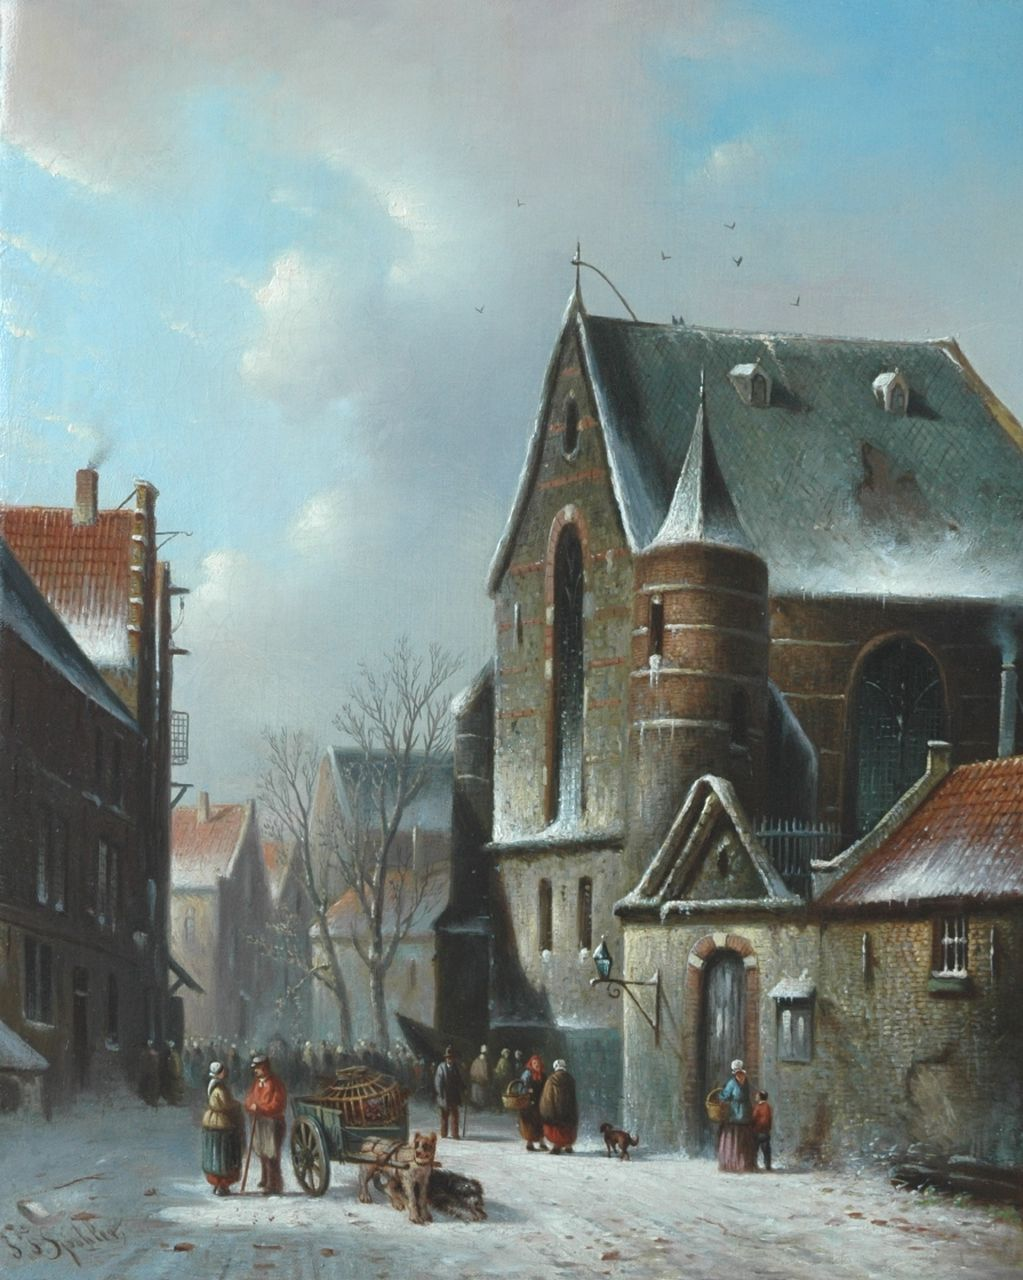 Spohler J.F.  | Johannes Franciscus Spohler, A village square in winter, oil on canvas 44.0 x 35.0 cm, signed l.l.